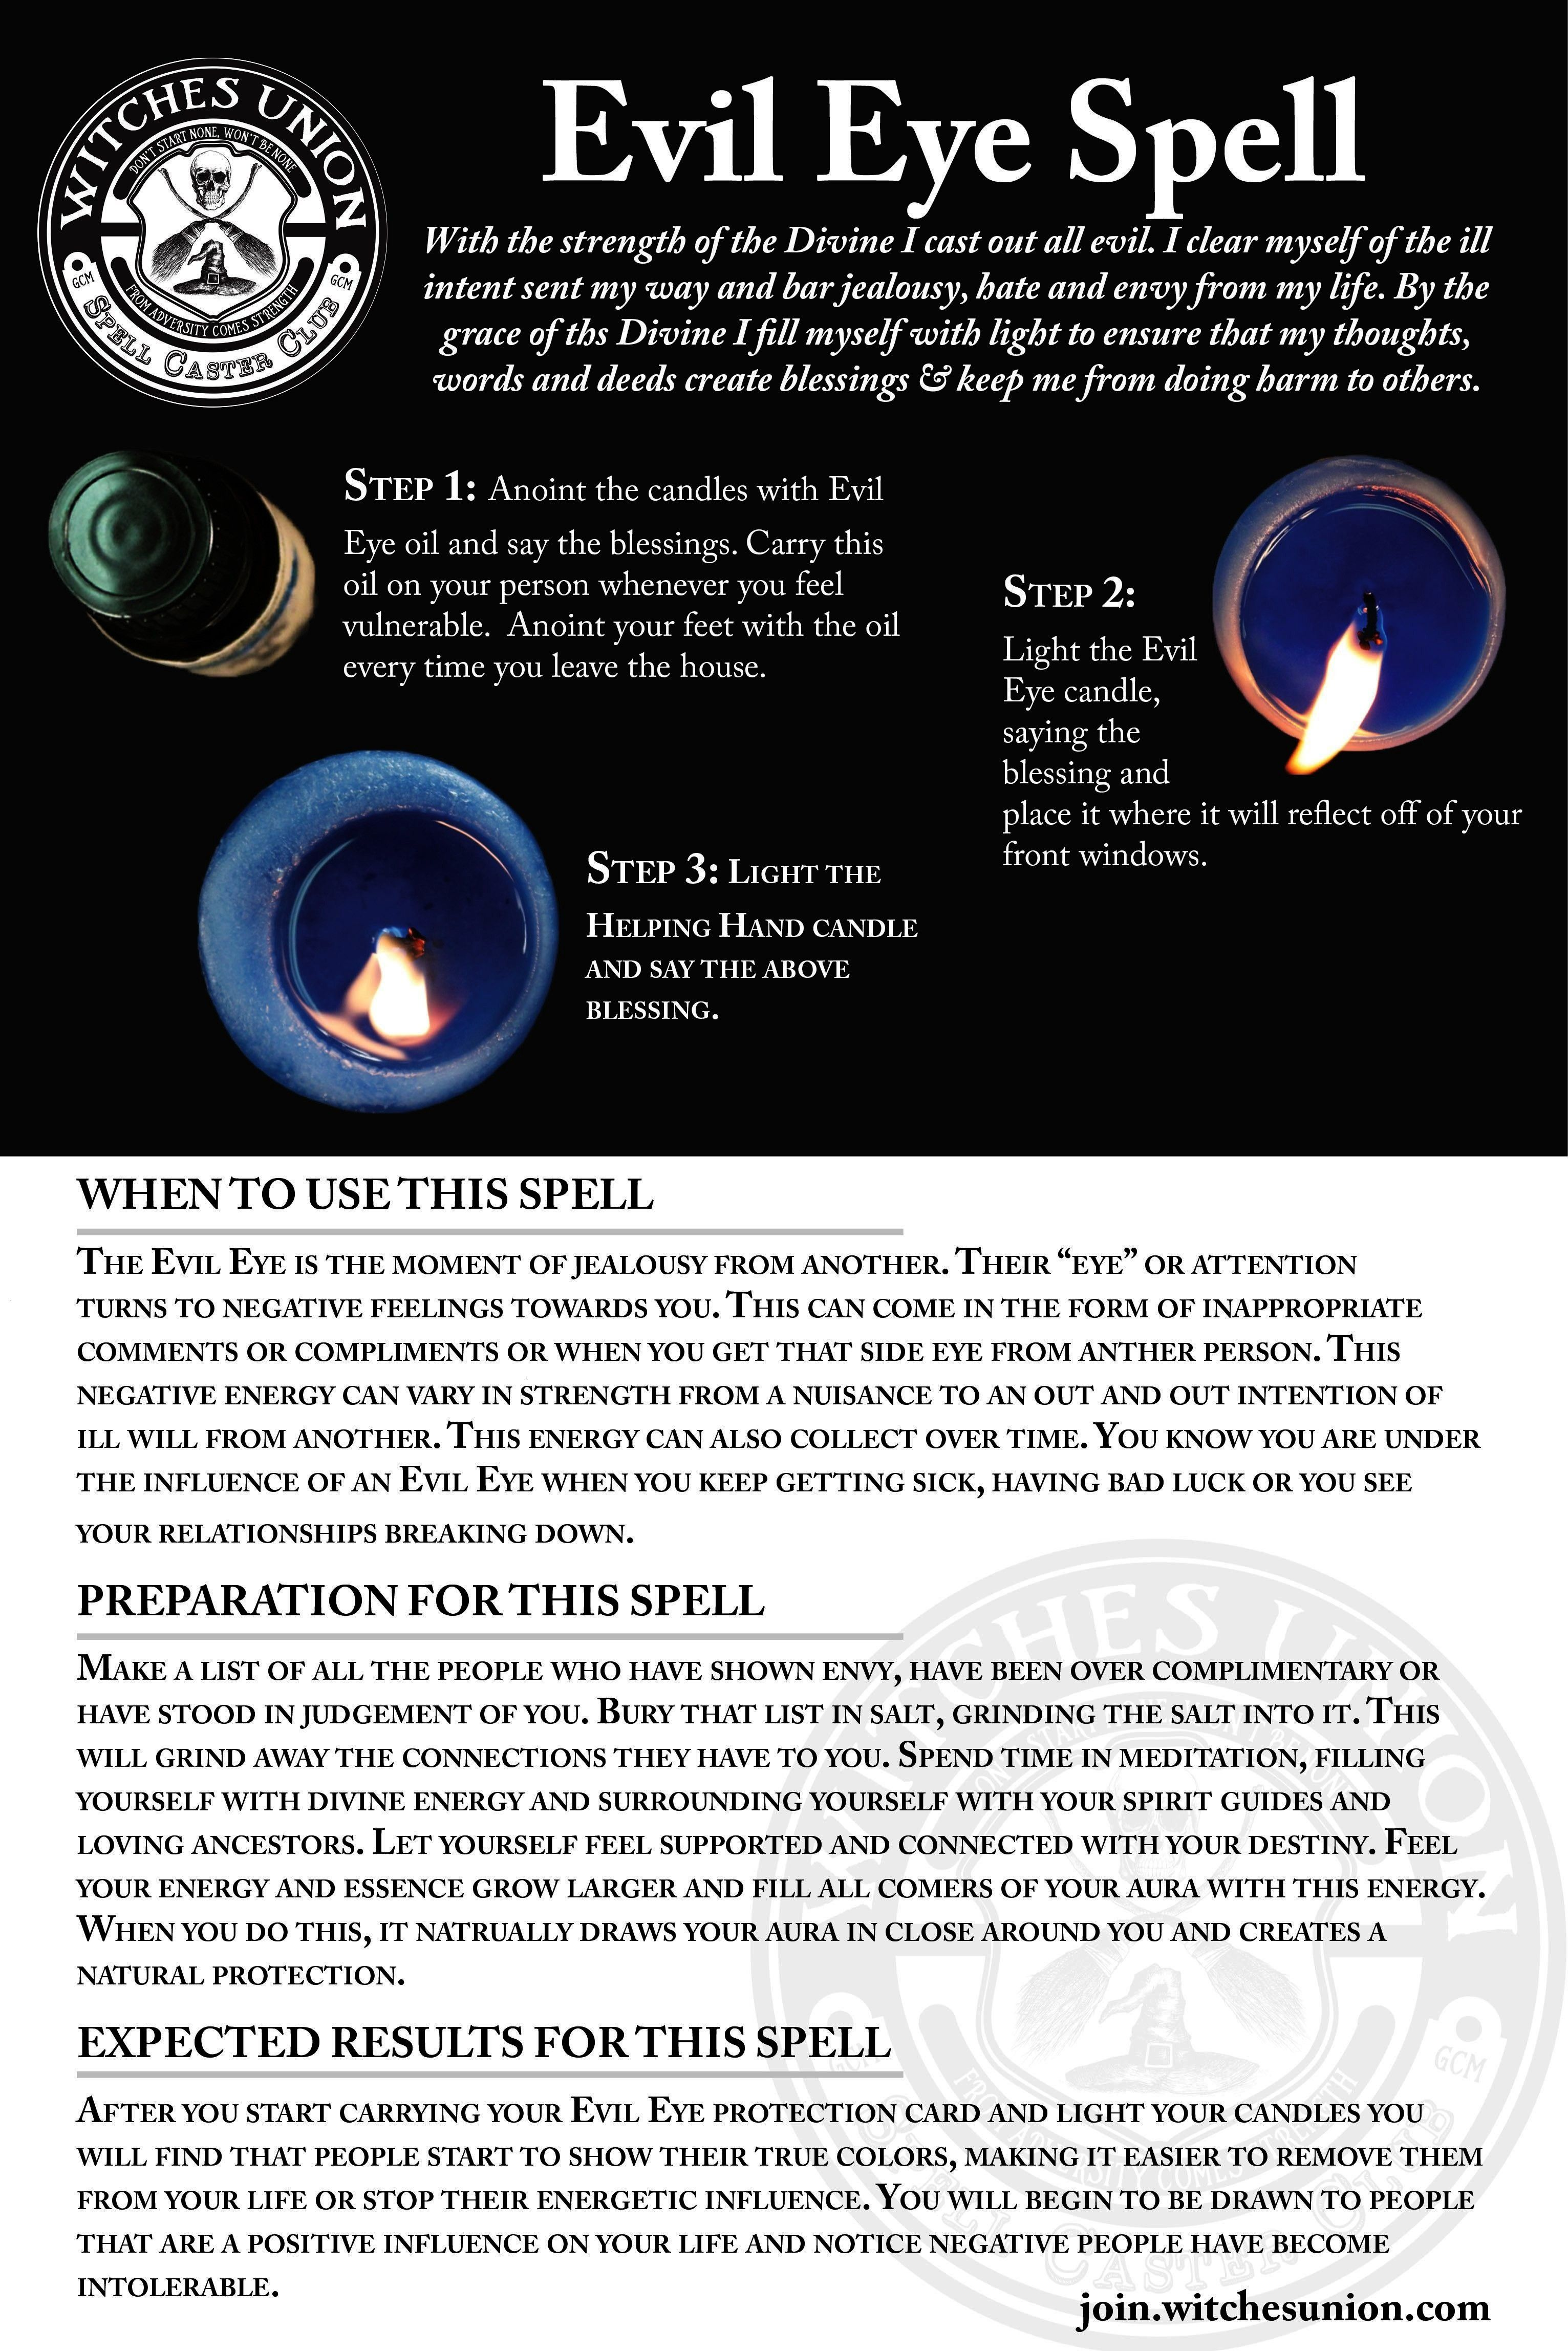 Spell  ProtectionEvil Eye Spell  ProtectionEye Spell  ProtectionEvil Eye Spell  Protection 2 pages  85 x 11 inches This fullcolor PDF printable tarot cheat sheet will hel...